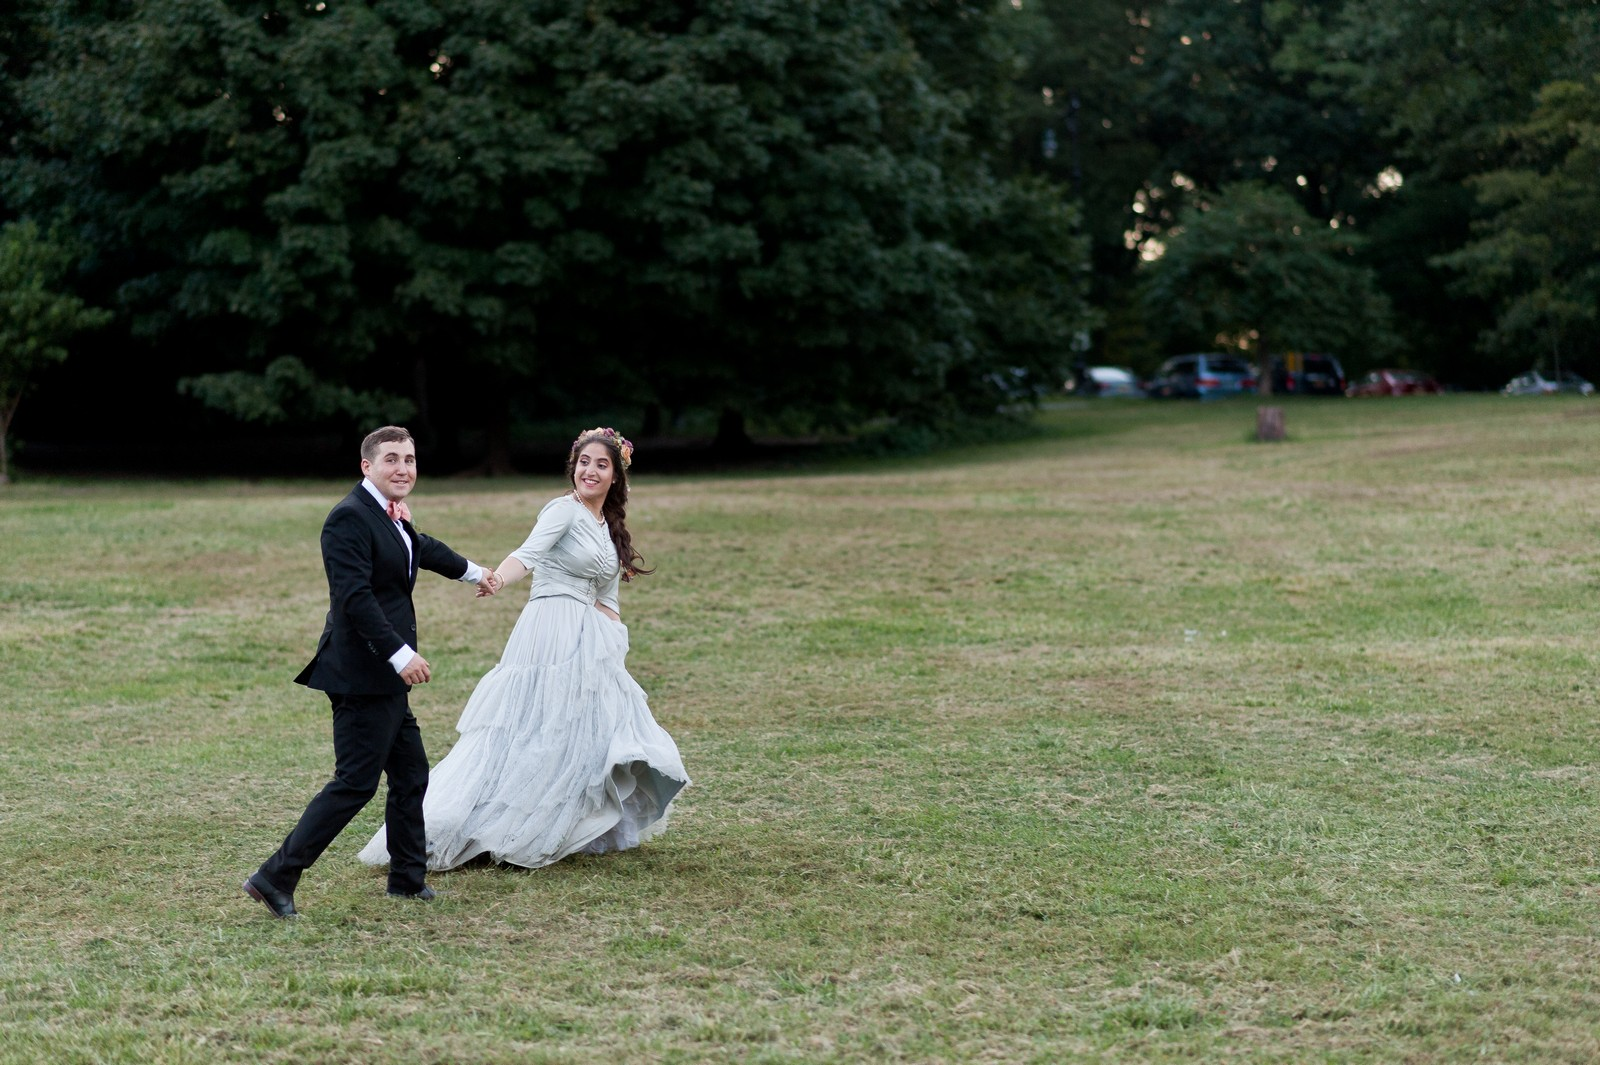 Chana and Motty's Chabad Jewish Wedding in Prospect Park Picnic House, Brooklyn, NY, Photos by Chaim Schvarcz bride groom portraits ceremony family